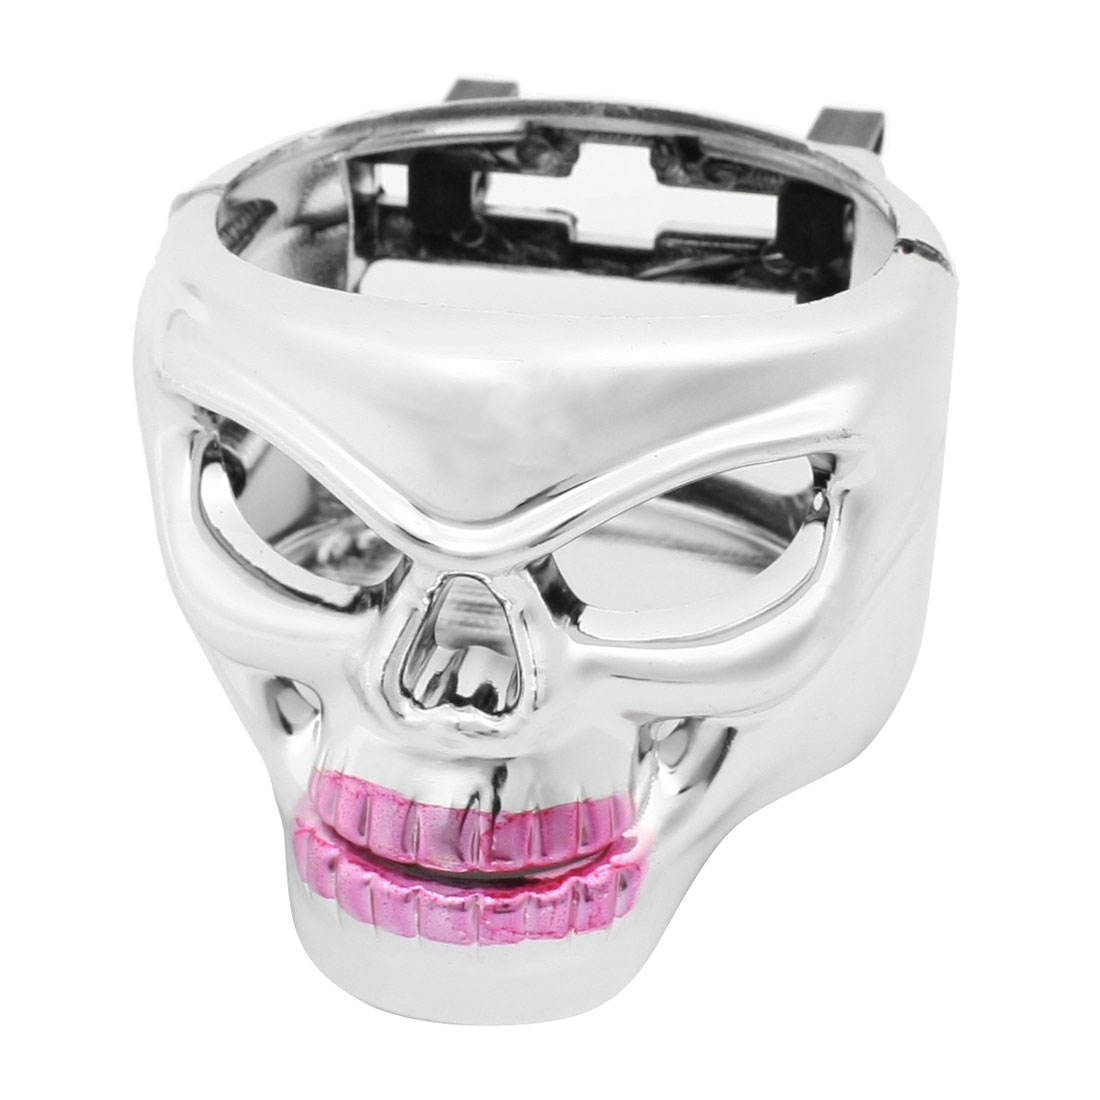 Car Auto Boat Silver Tone Skull Shaped Can Cup Bottle Drink Holder